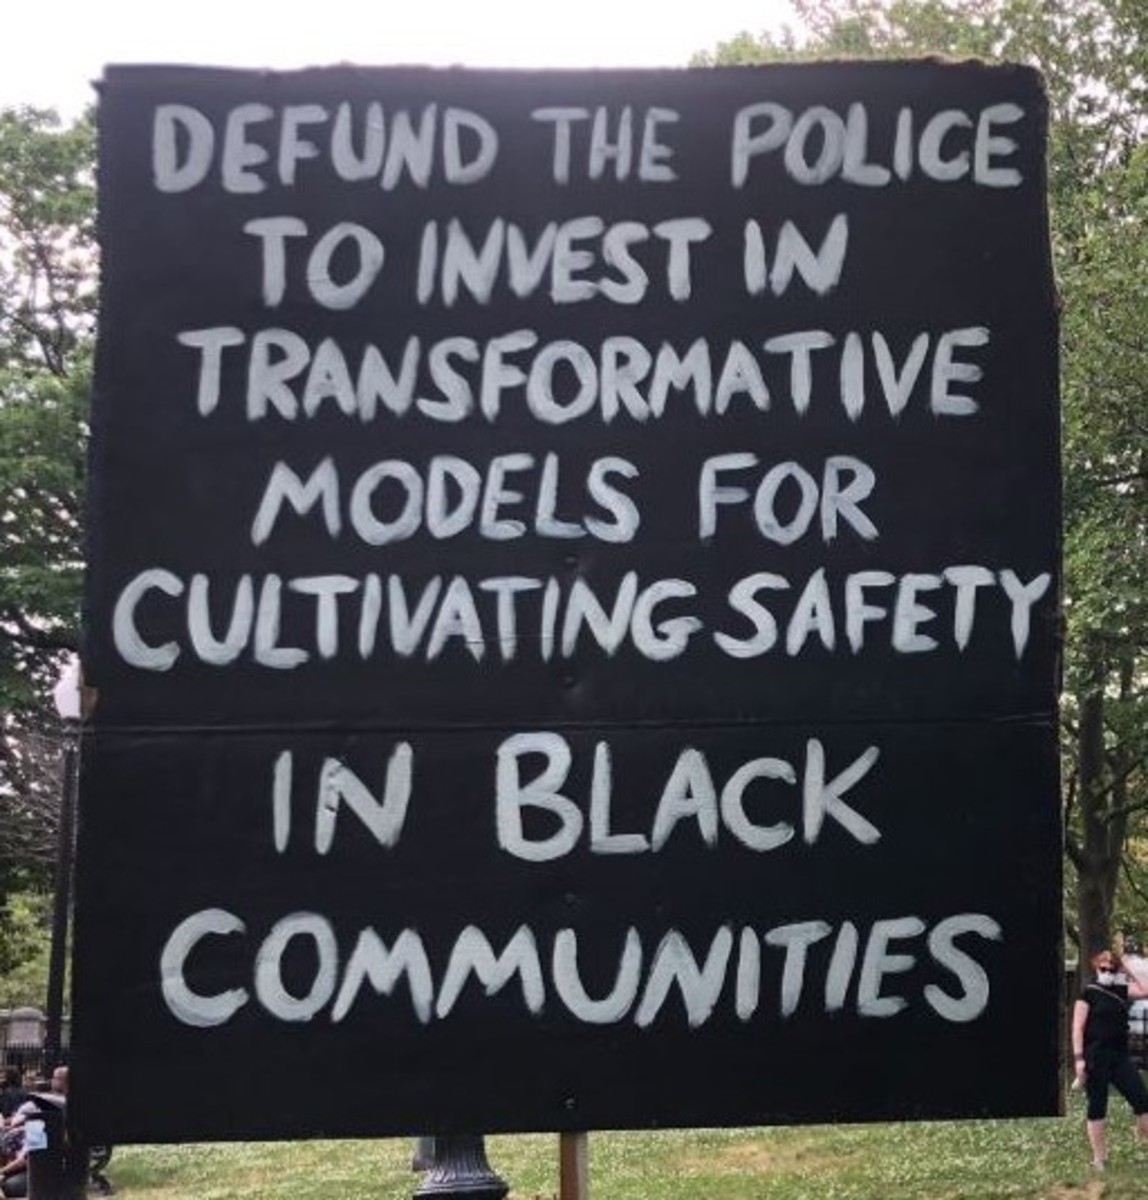 we-need-to-defund-the-police-now-an-examination-and-case-for-the-immediate-reallocation-of-police-funds